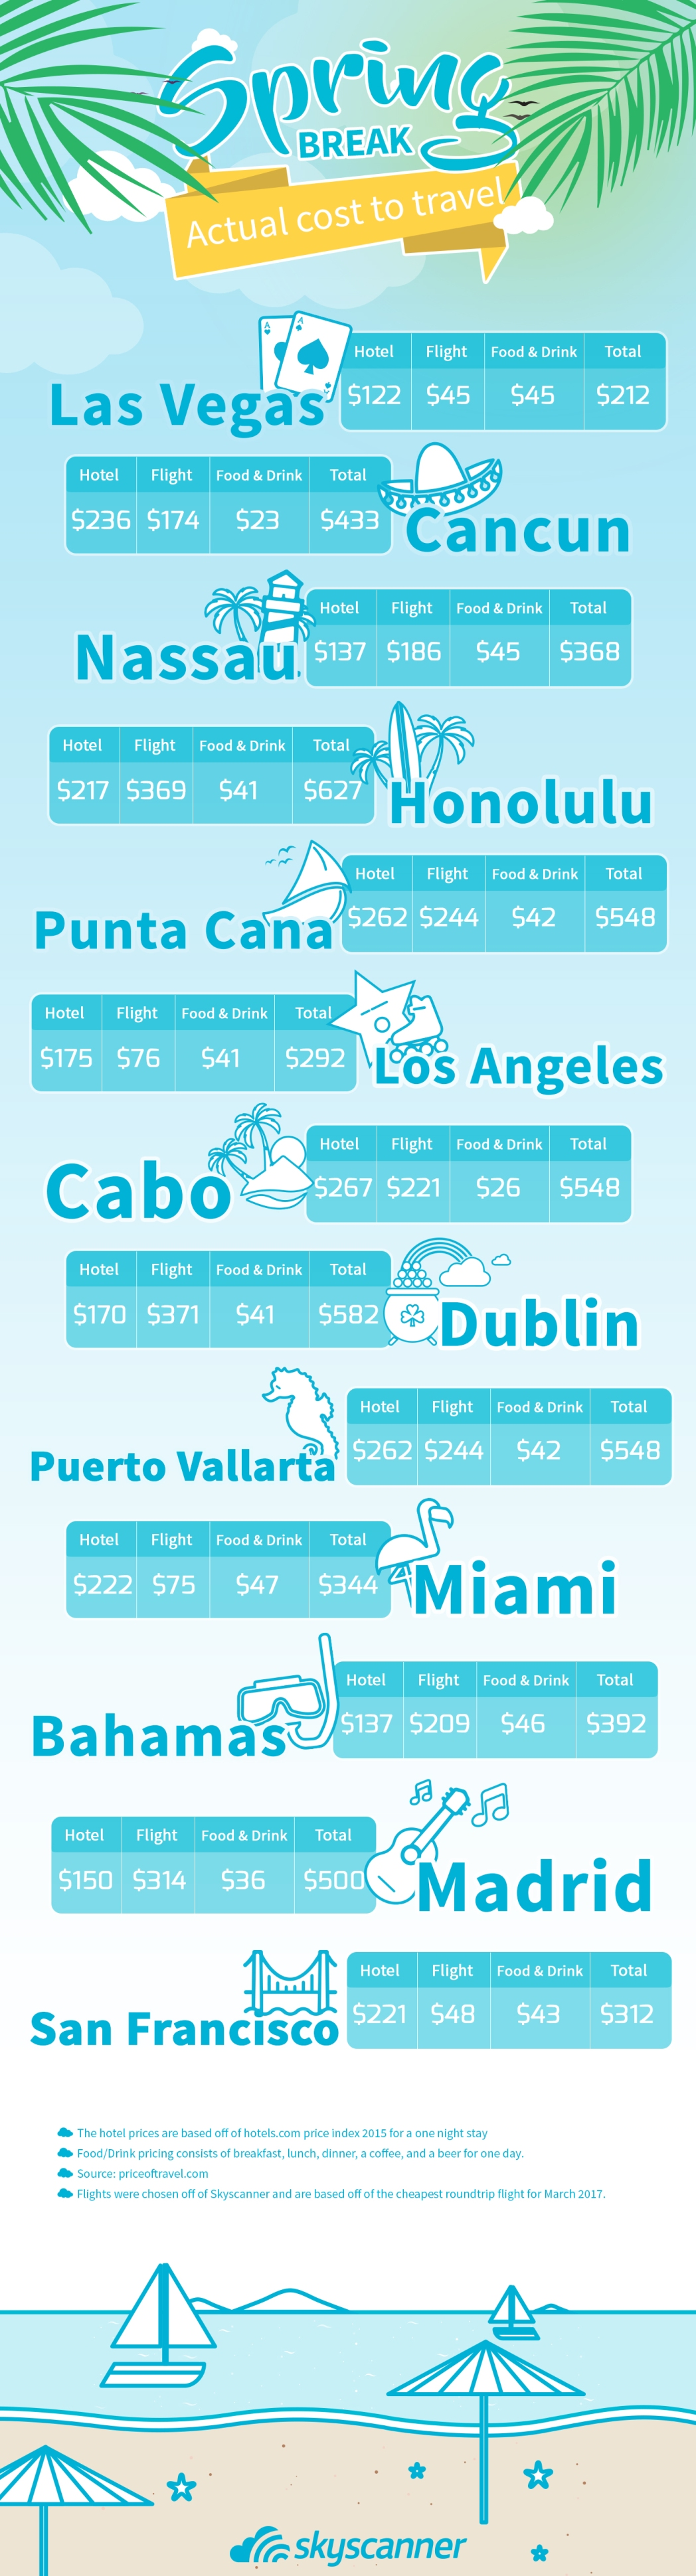 Spring Break Cost Infographic